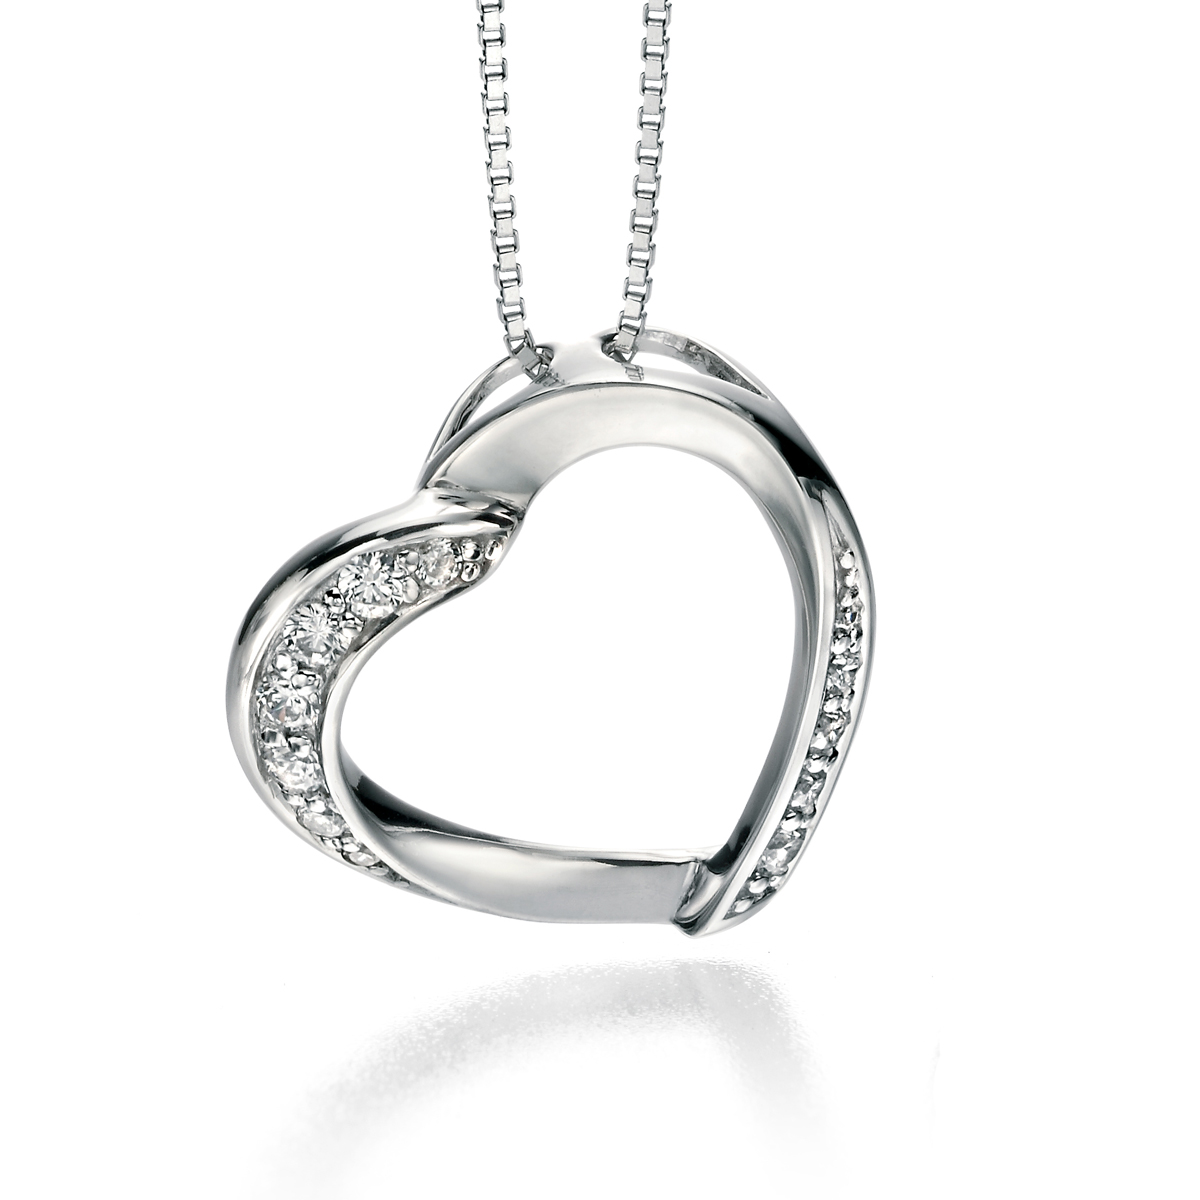 Fiorelli silver and clear cz ribbon heart pendant necklace crocketts home shop jewellery necklaces fiorelli silver and clear cz ribbon heart pendant necklace mozeypictures Gallery